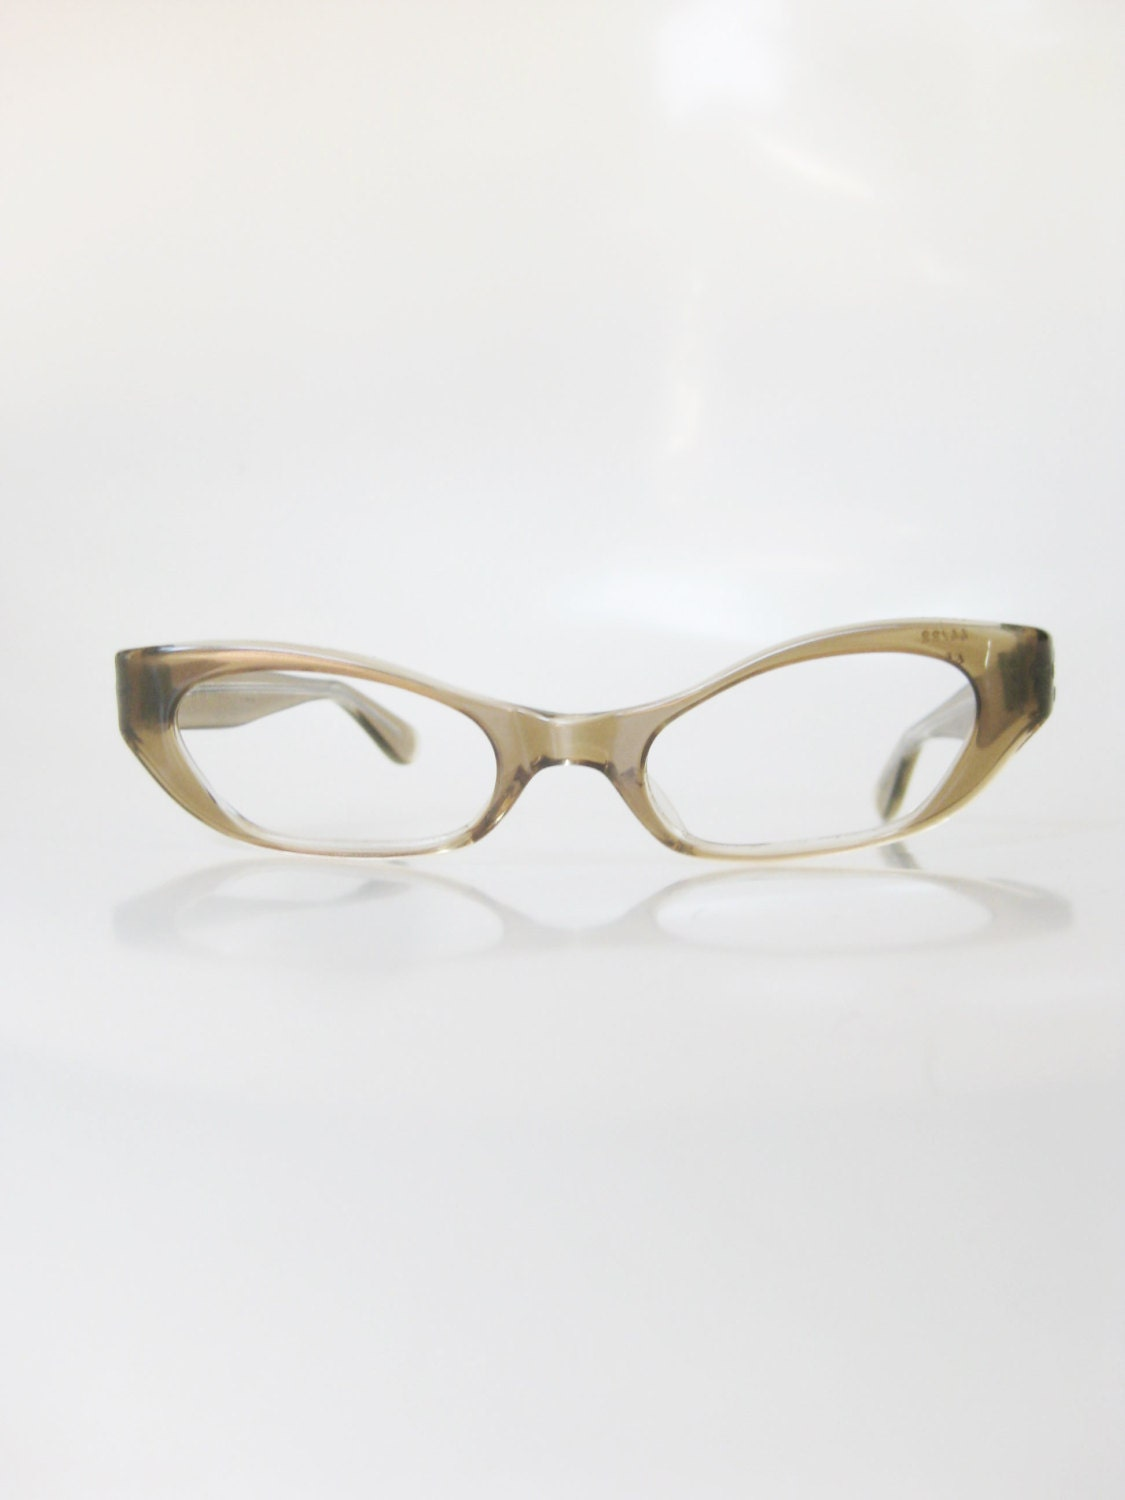 648207830ce9 Vintage 1960s Brown Cat Eye Glasses Eyeglasses Golden Gold Mid Century  Modern 60s Mod Indie Hipster